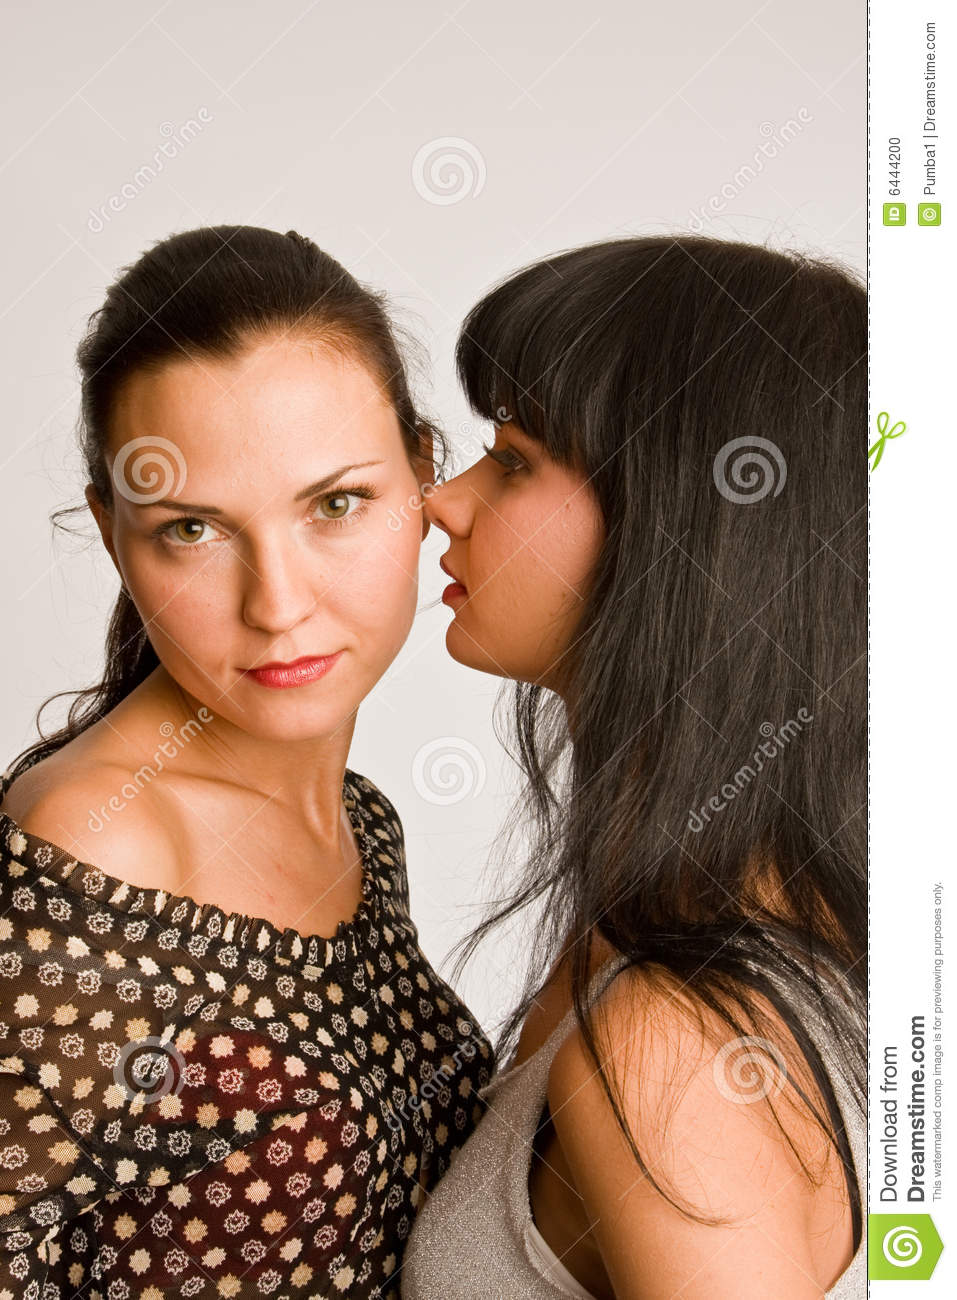 Two on one lesbian